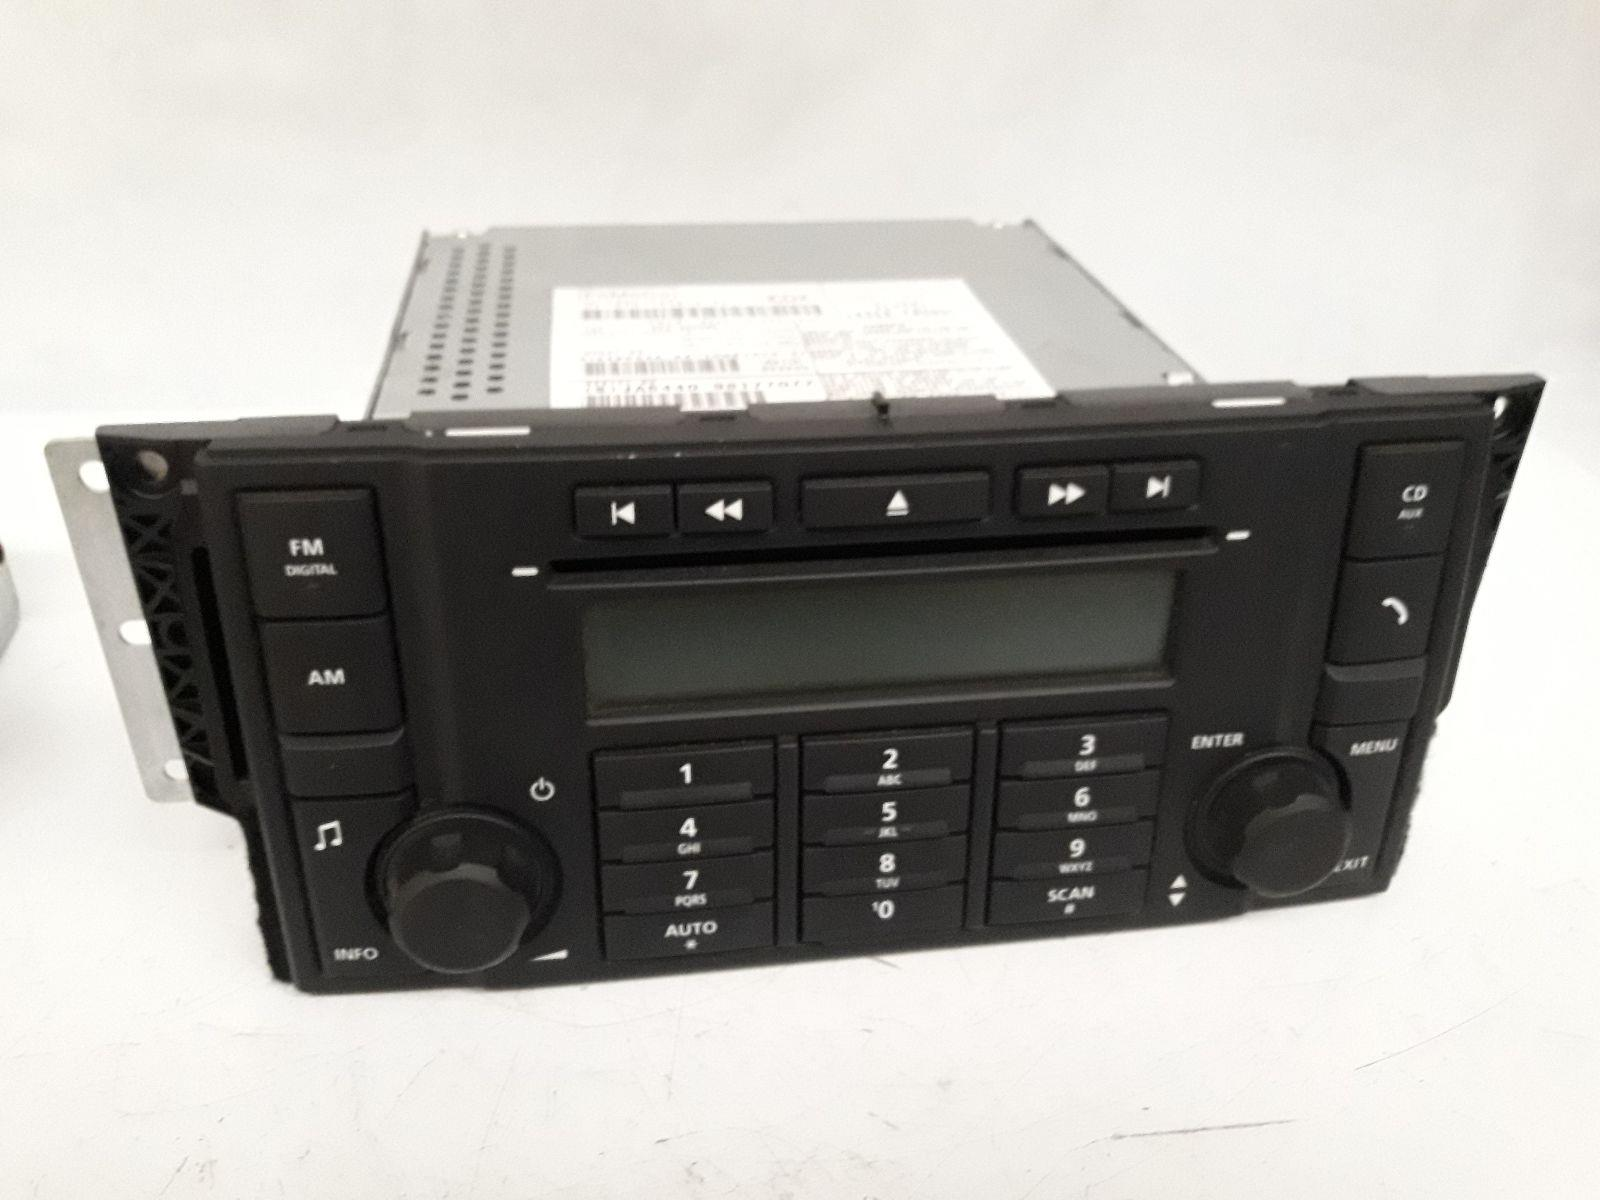 Land Rover LAND ROVER FREELANDER 2 2007-2010 COMPLETE UNIT WITH NAV SCREEN  UNTESTED  MAY NEED CODING